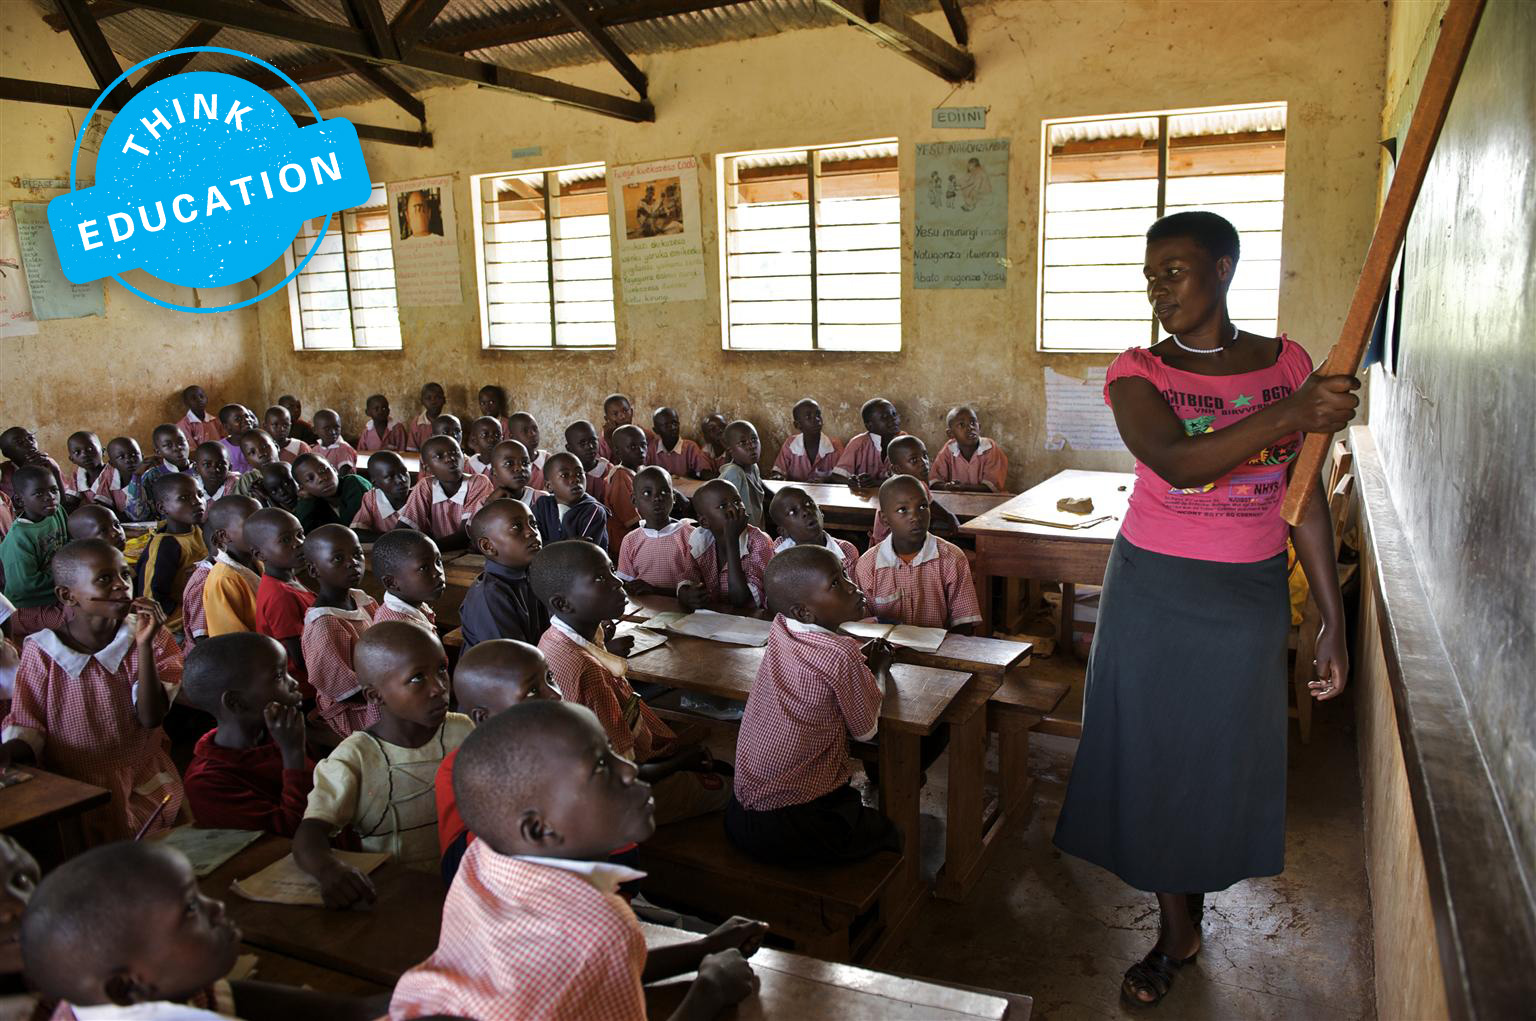 A teacher points at the blackboard with a ruler as she turns to face a classroom full of children looking attentively at her and the board. From Think Education Series of think pieces on the challenges facing global education.